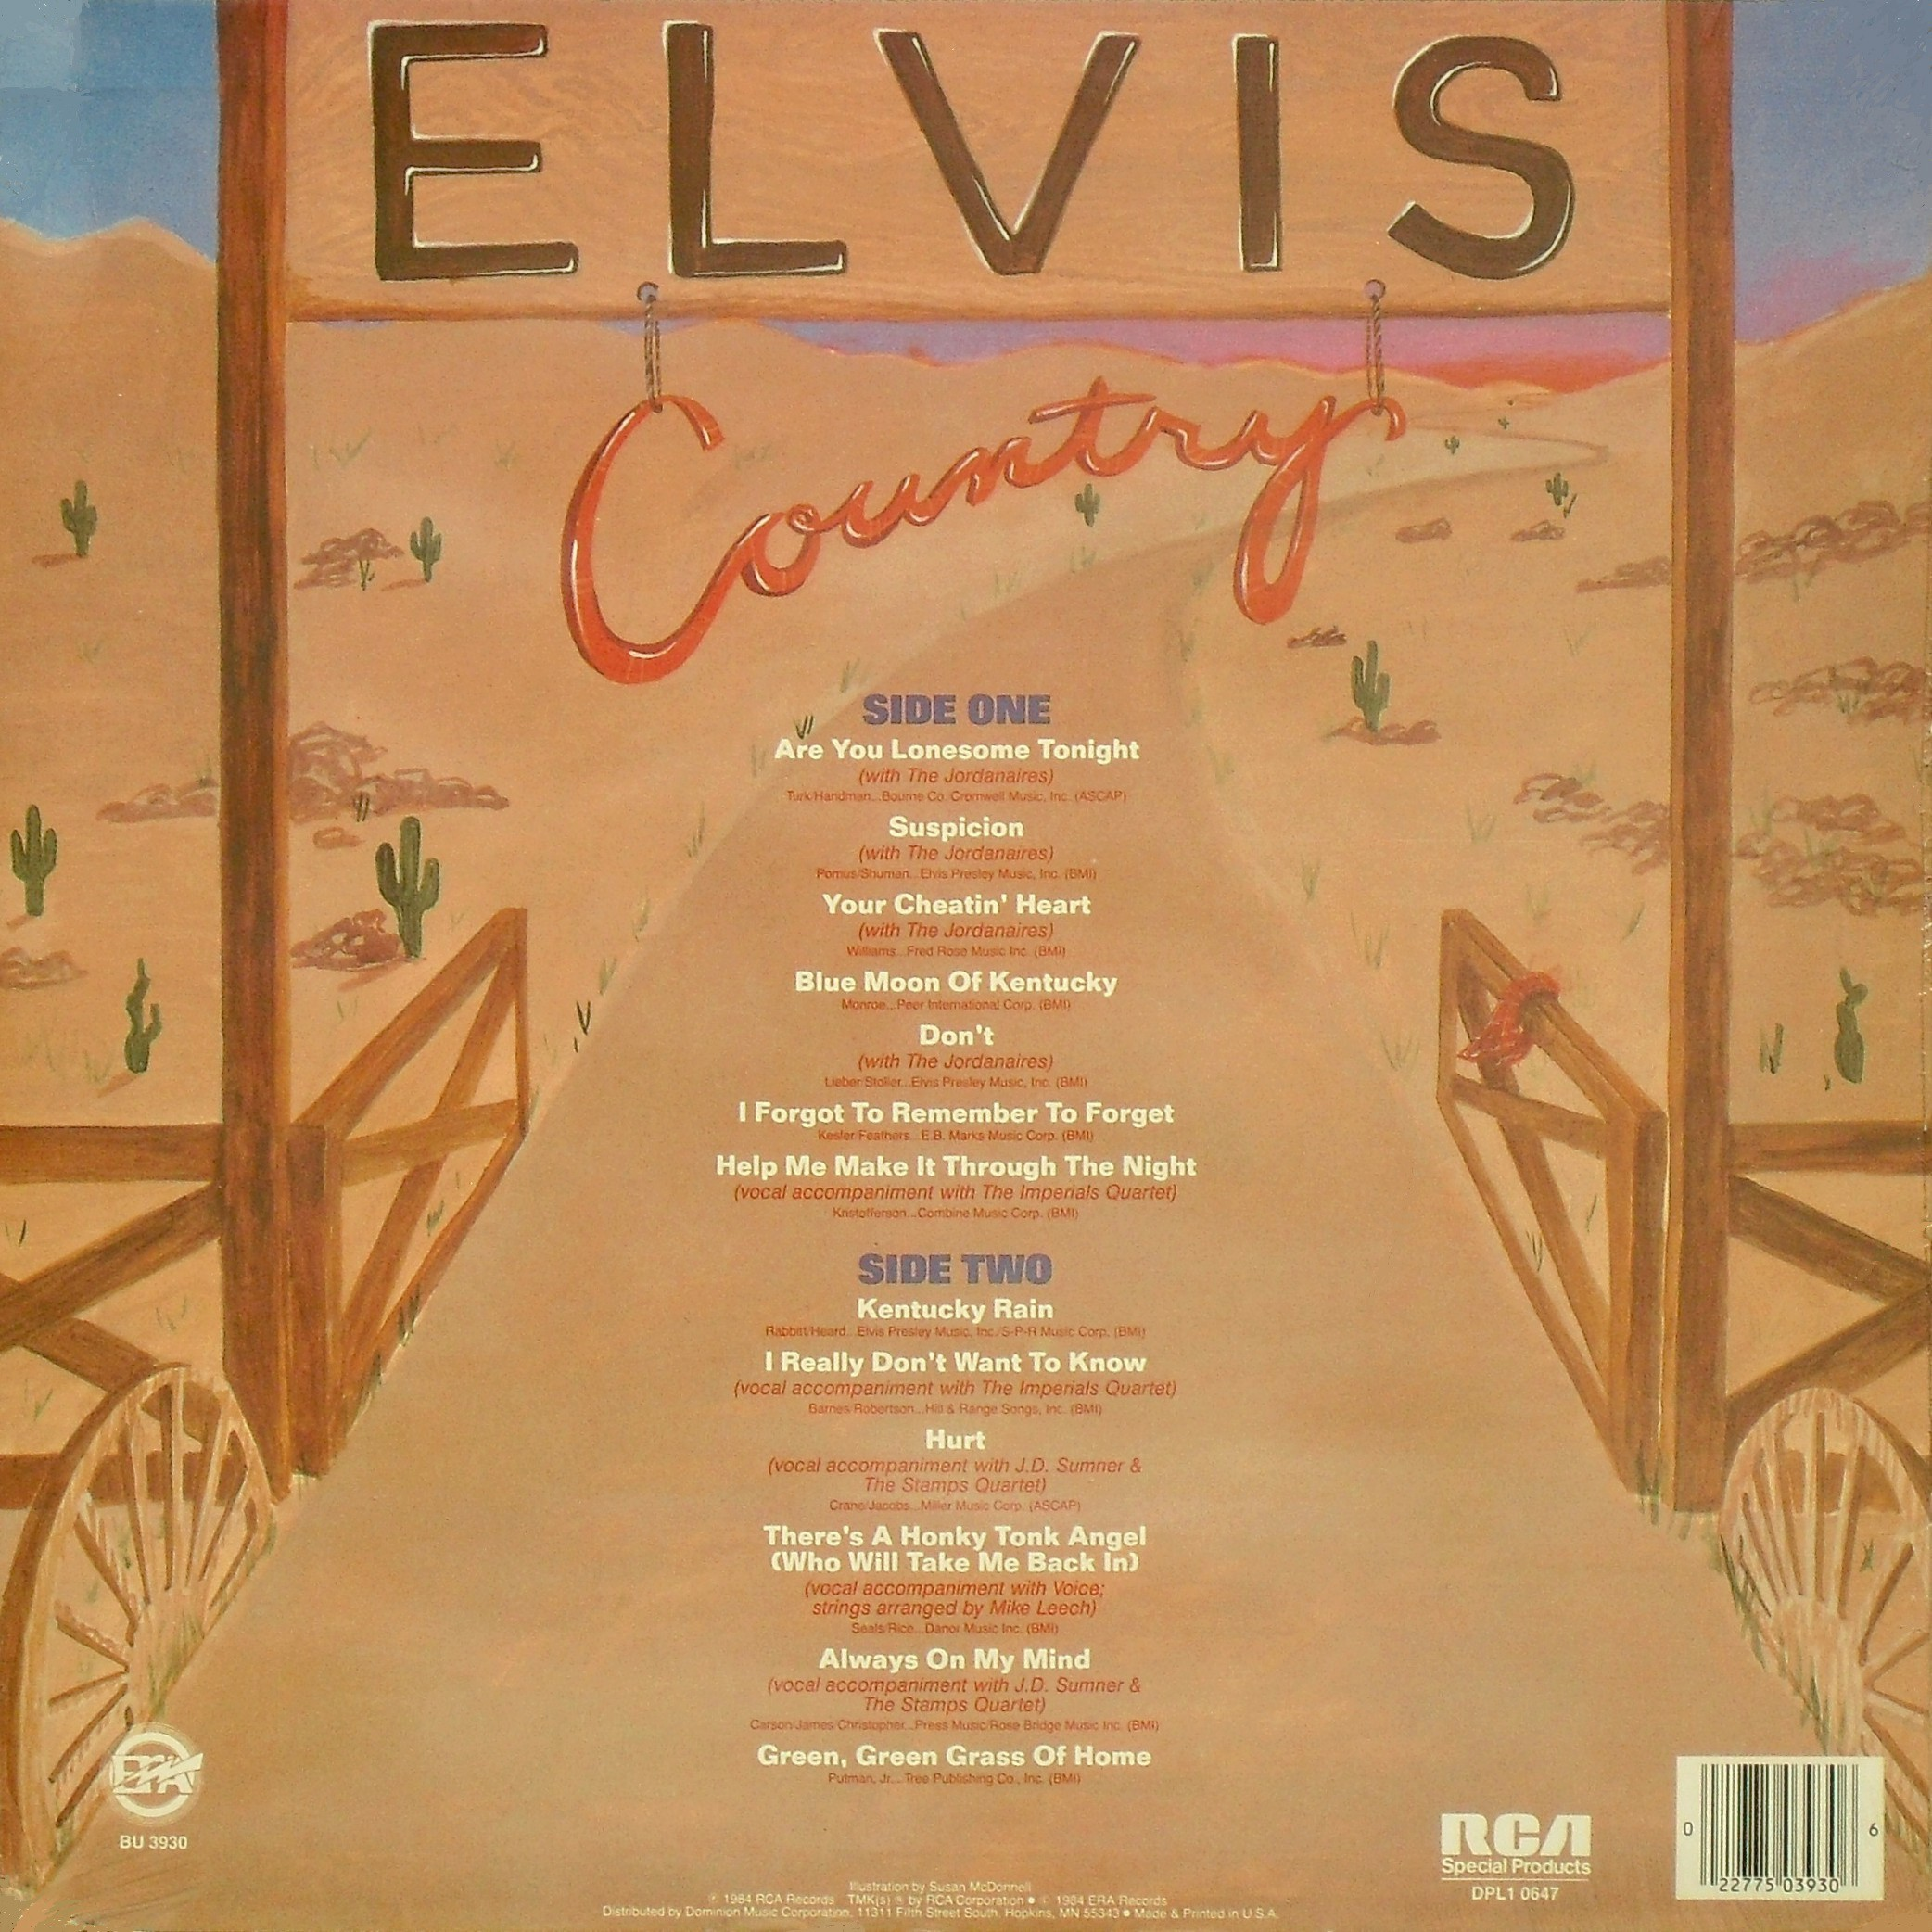 ELVIS COUNTRY 02mea9d